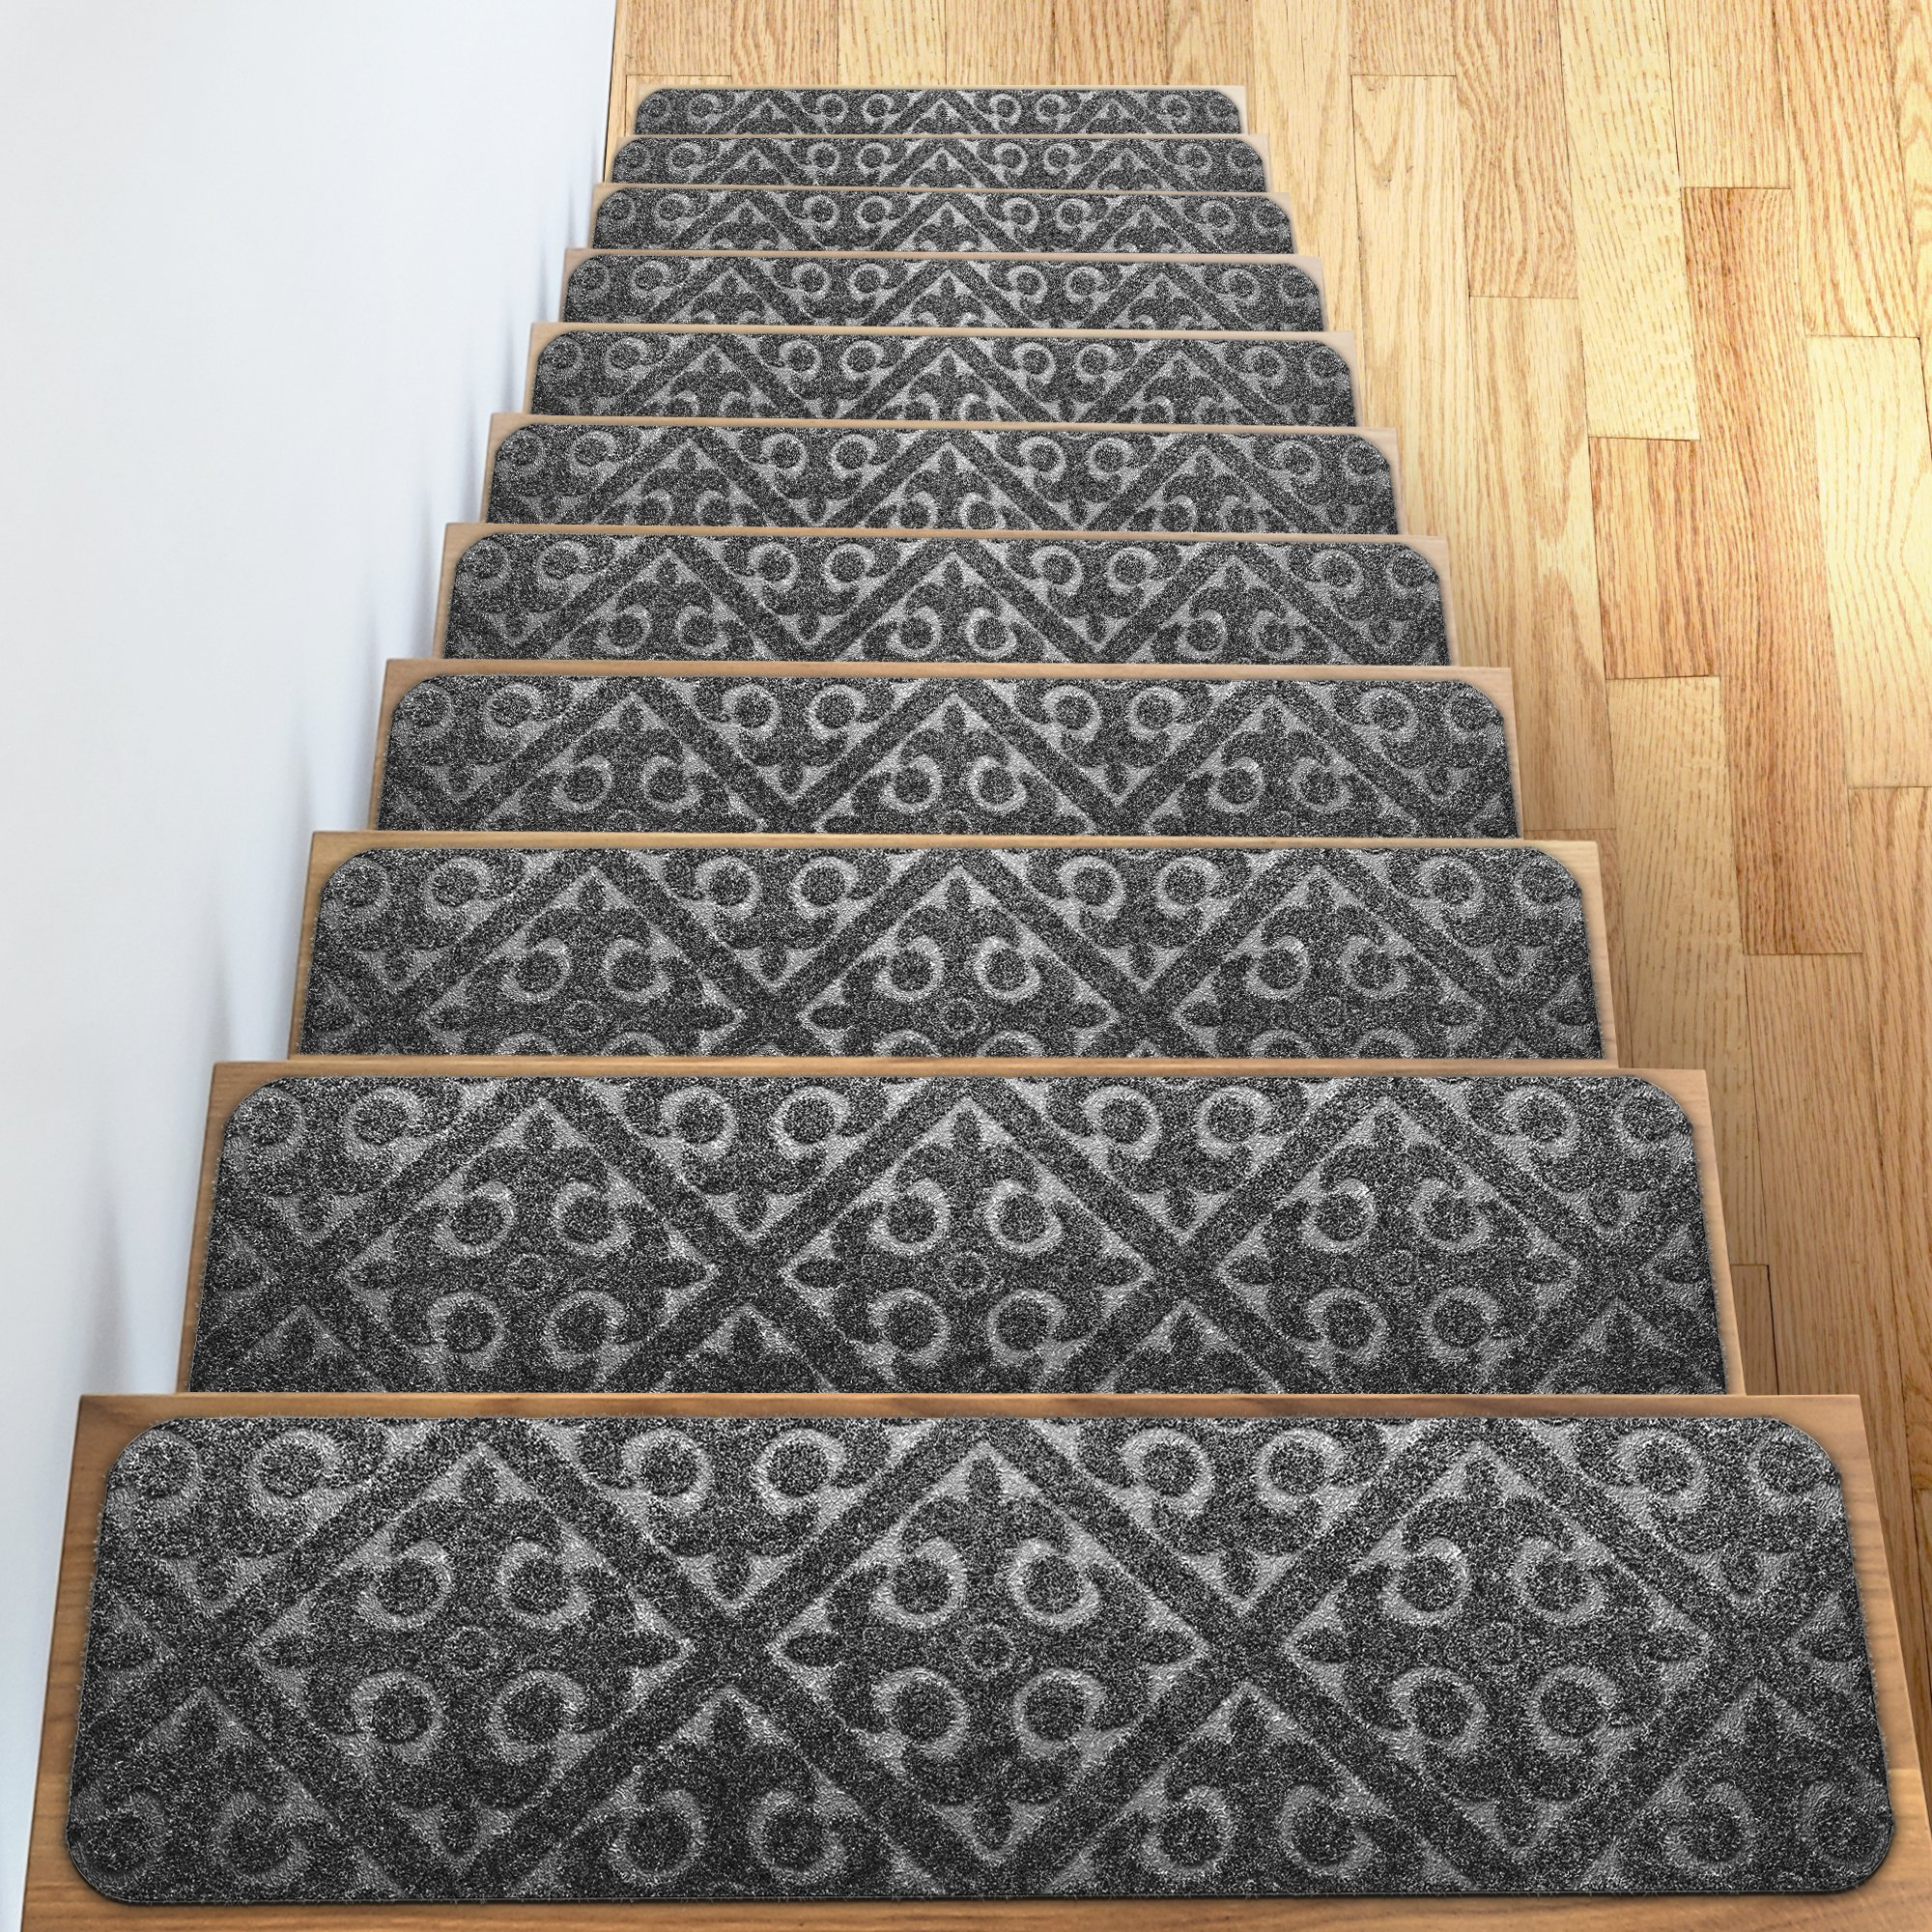 Ordinaire Carpet Stair Treads Set Of 13 Non Slip/Skid Rubber Runner Mats Or Rug Tread    Indoor Outdoor Pet Dog Stair Treads Pads   Non Slip Stairway Carpet Rugs  ...